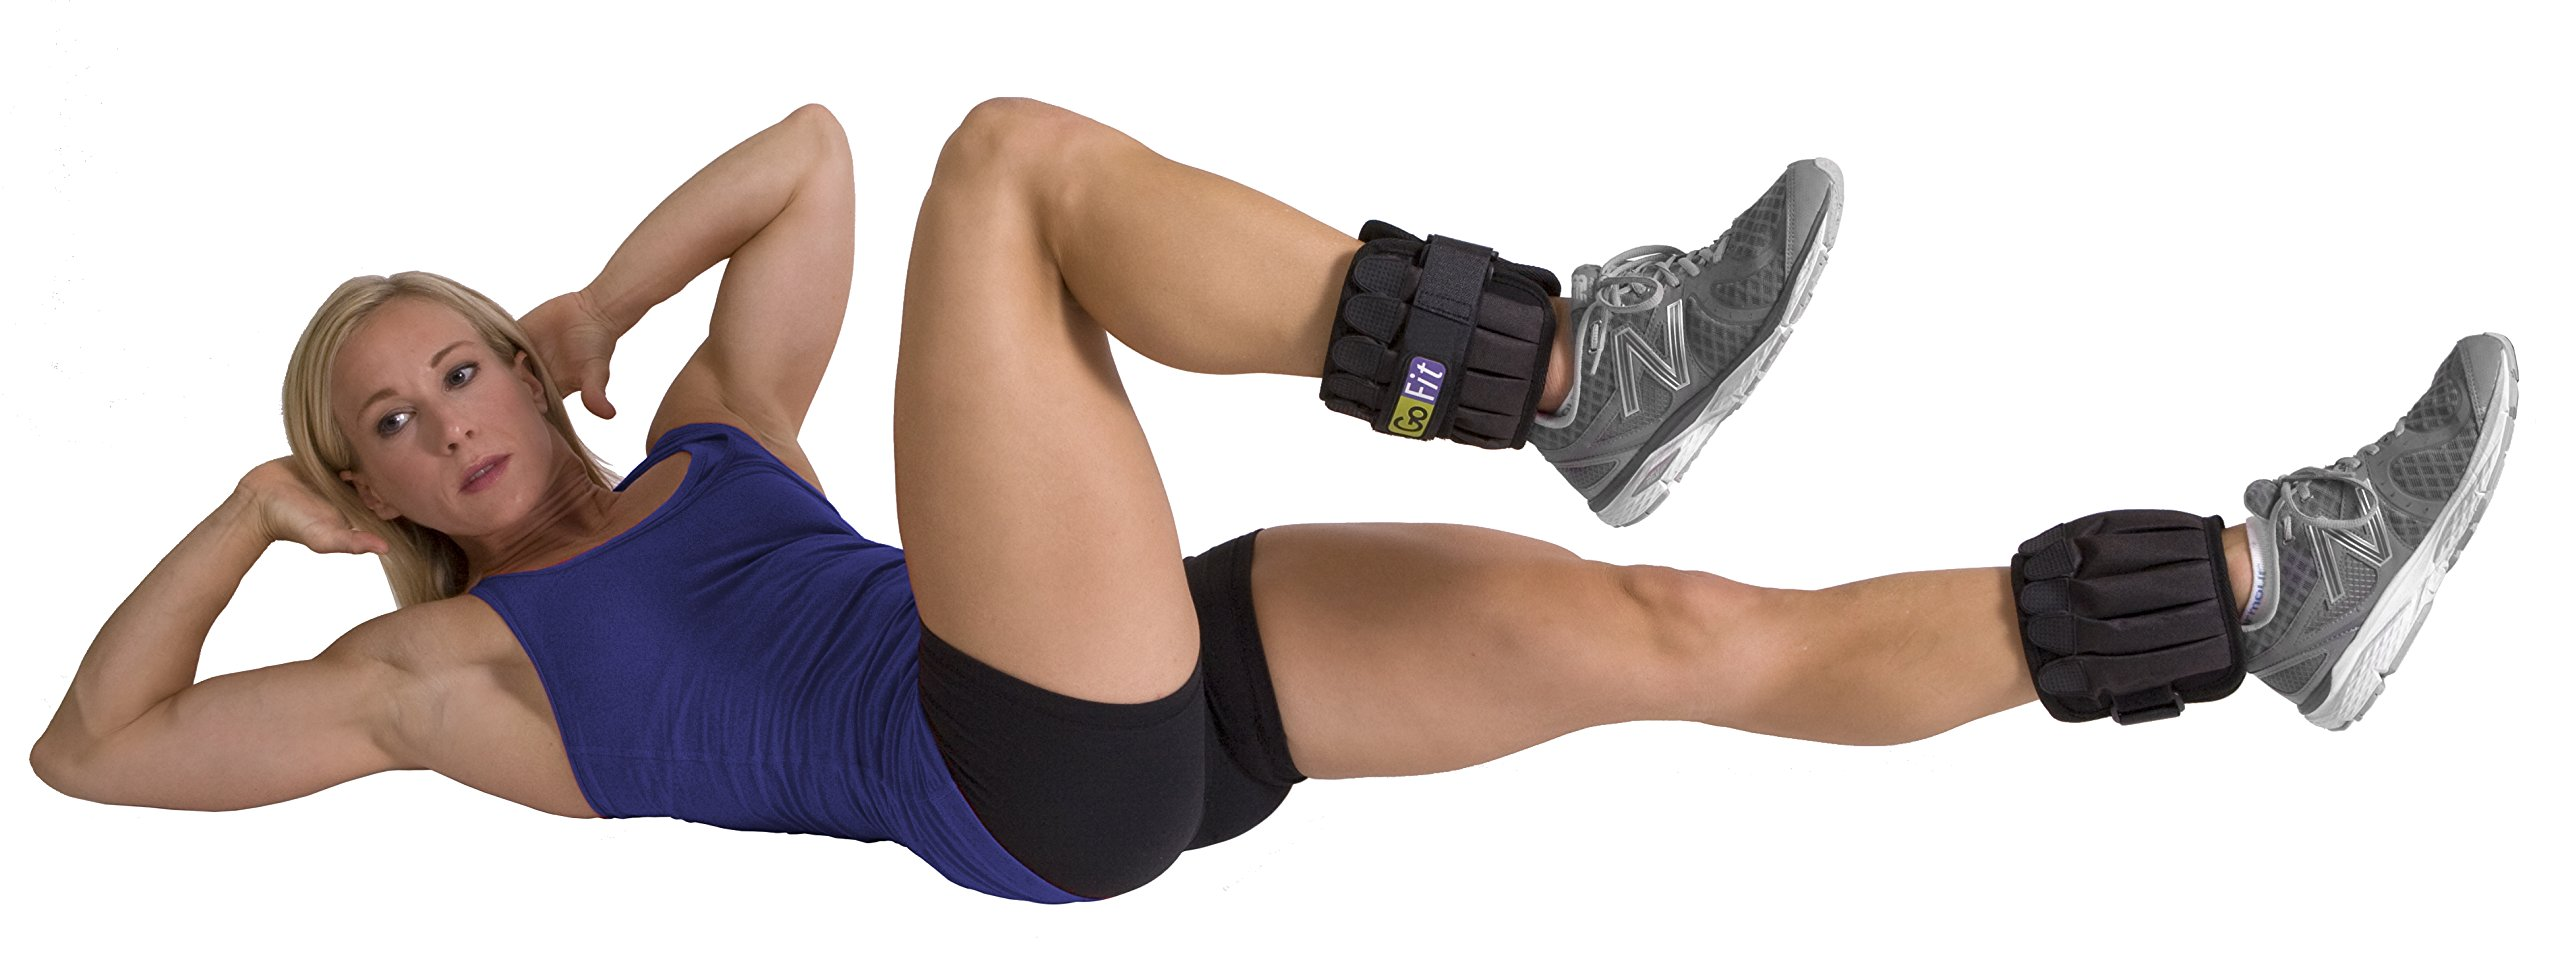 GoFit Padded, Adjustable Ankle Weight Set - Comfortable Training and Rehabilitation Gear by GoFit (Image #5)